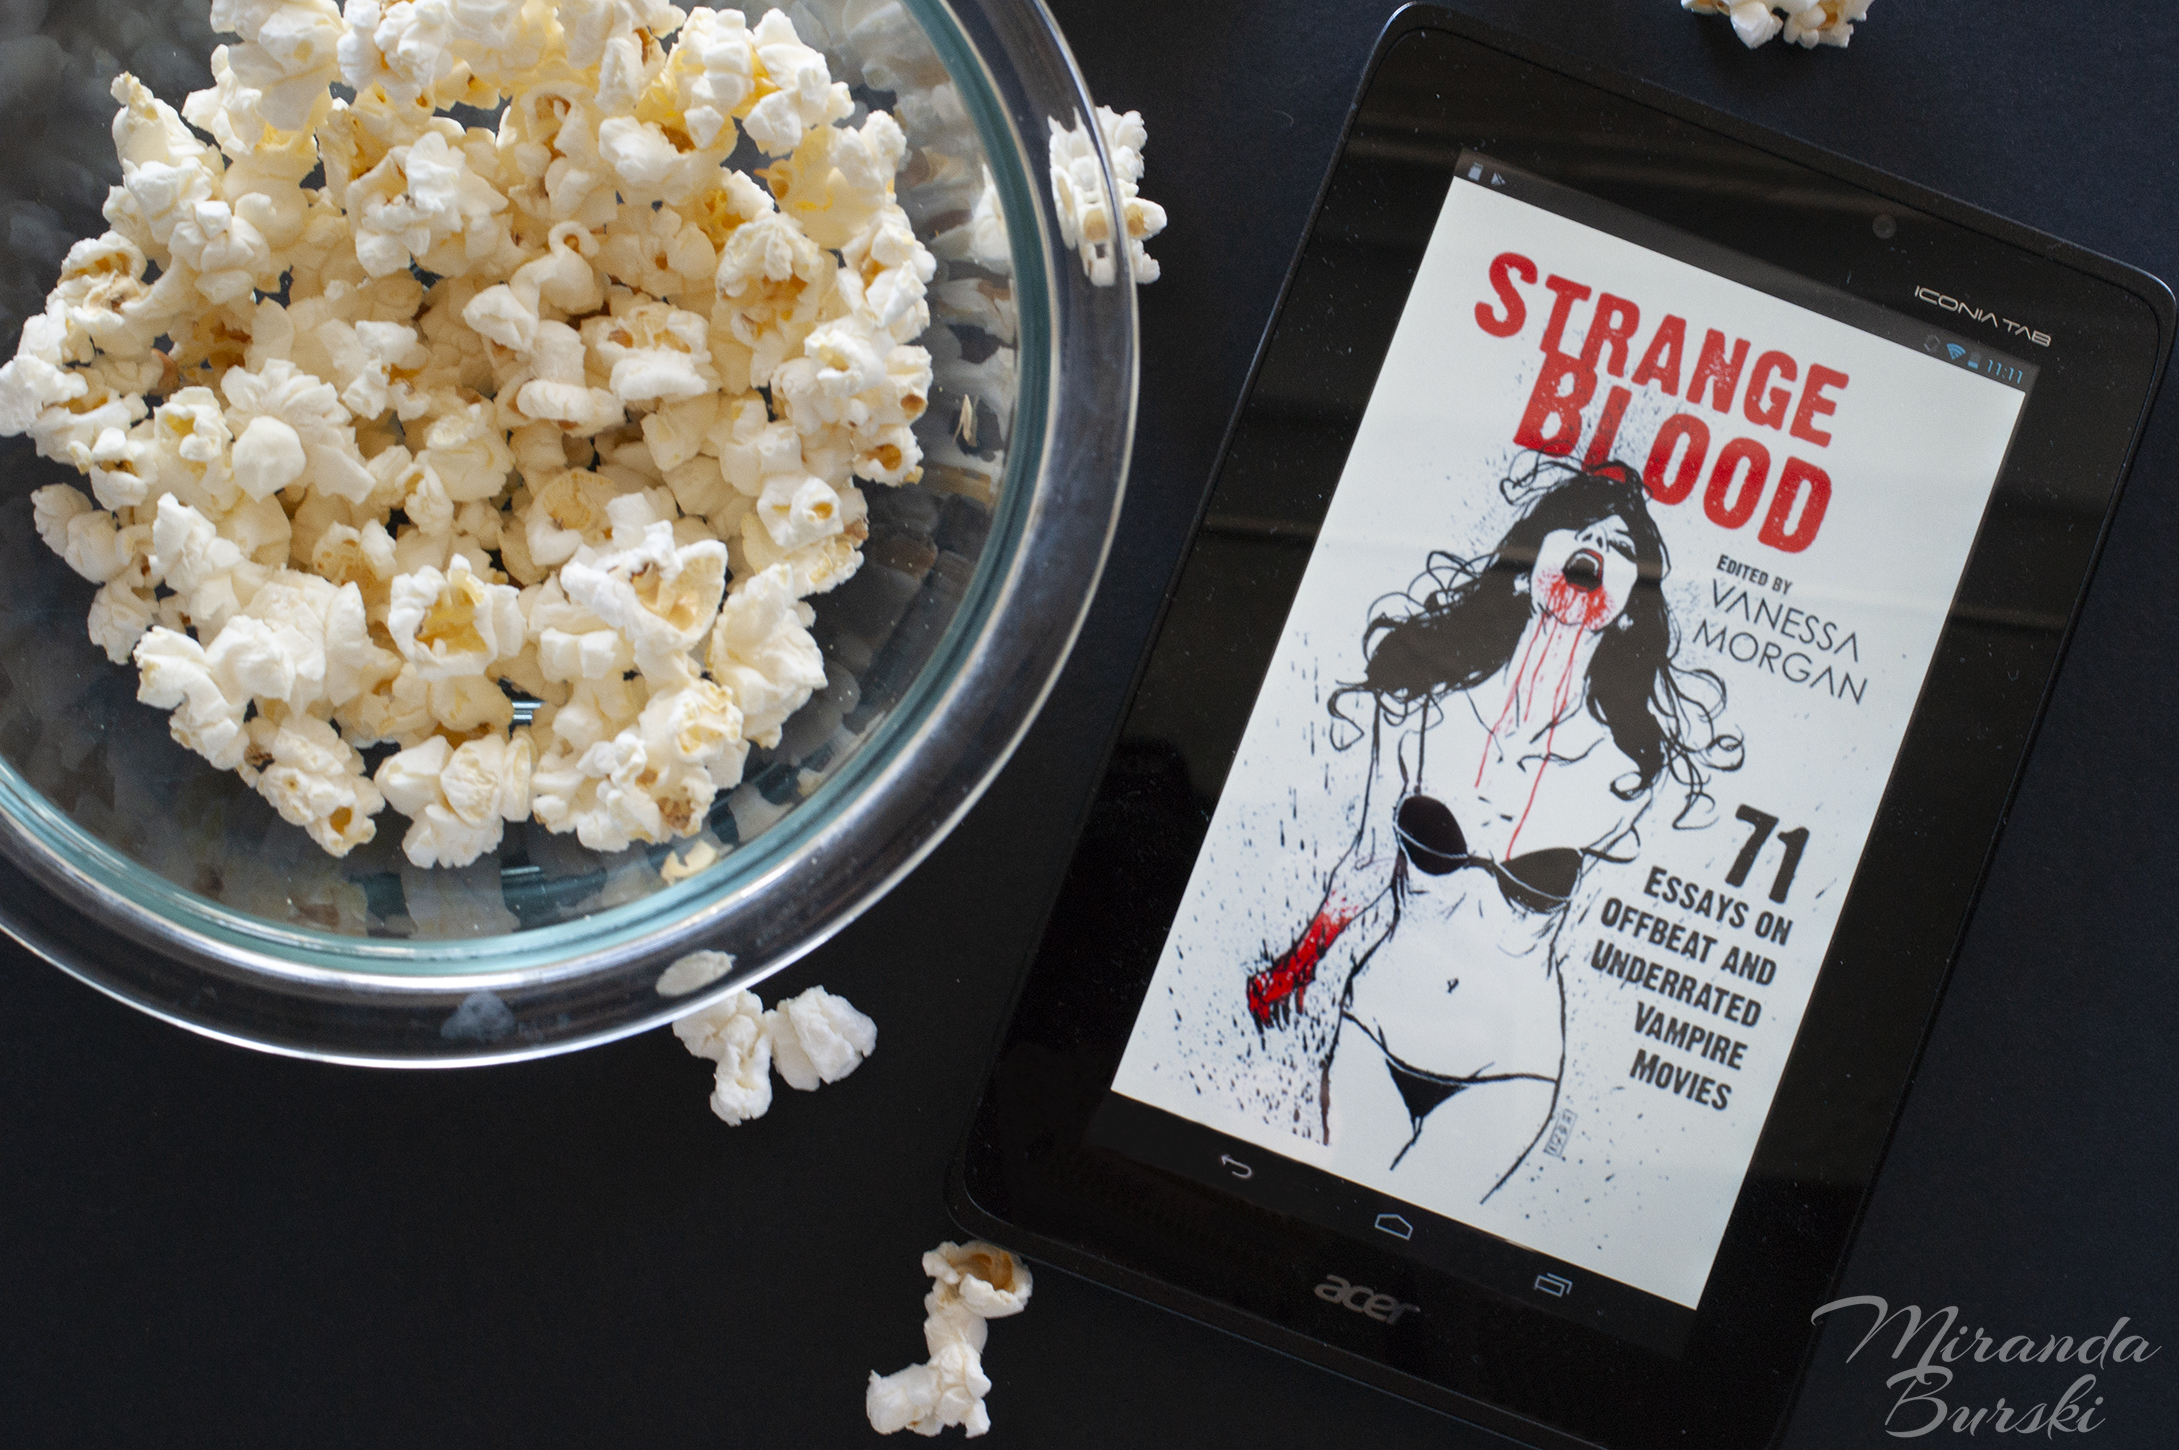 An e-book copy of Strange Blood, edited by Vanessa Morgan, beside a bowl of popcorn.